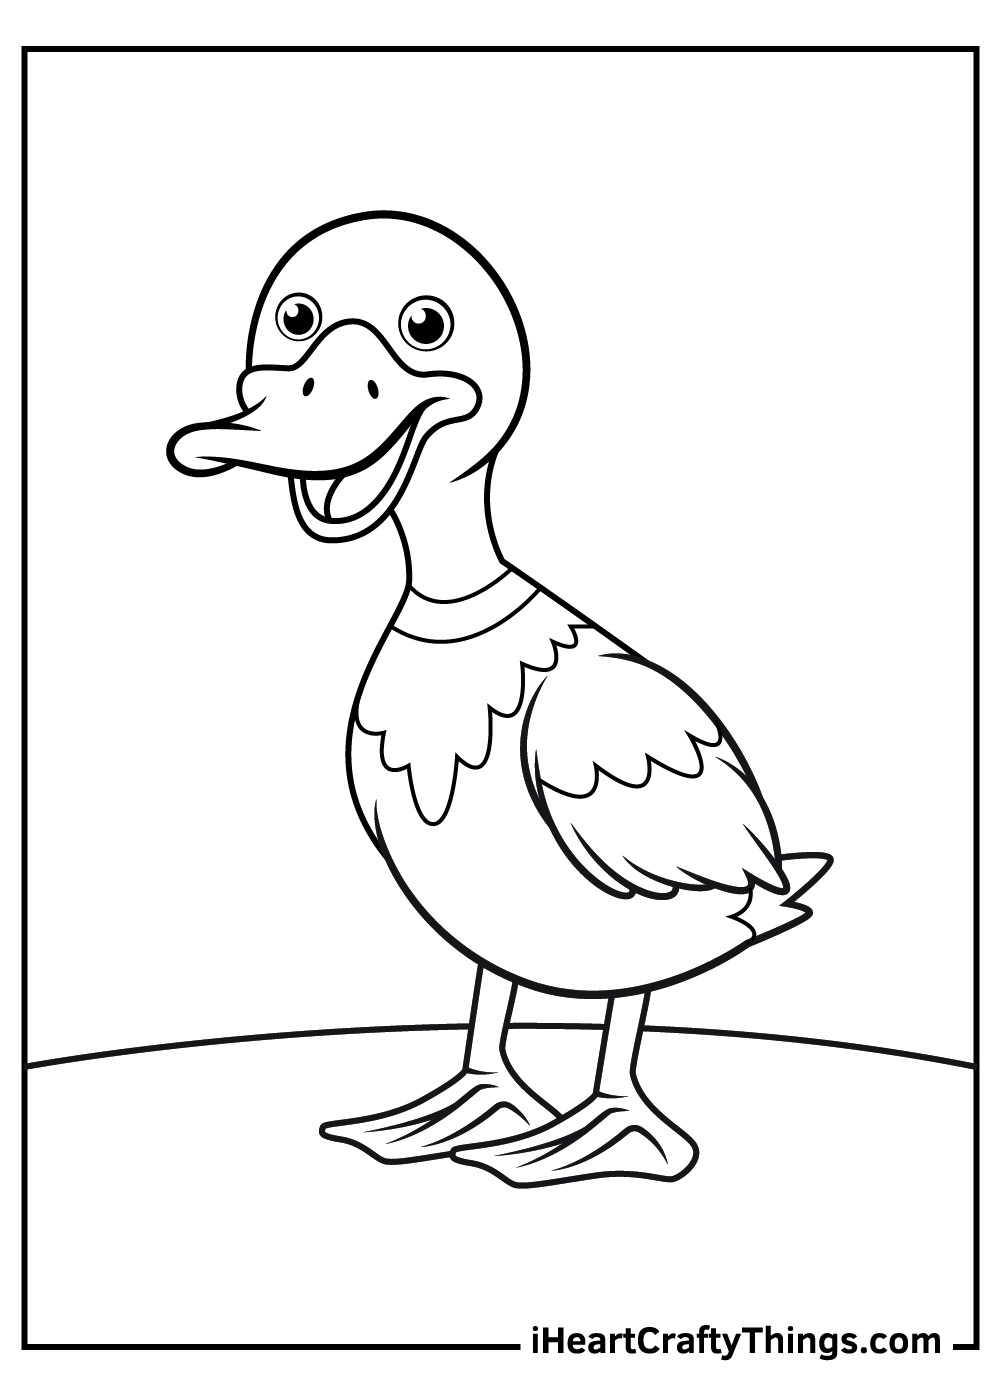 duck coloring updated ducks shamrock printouts bold and bright not crayons pusheen llama coloring pages Duck Coloring Page